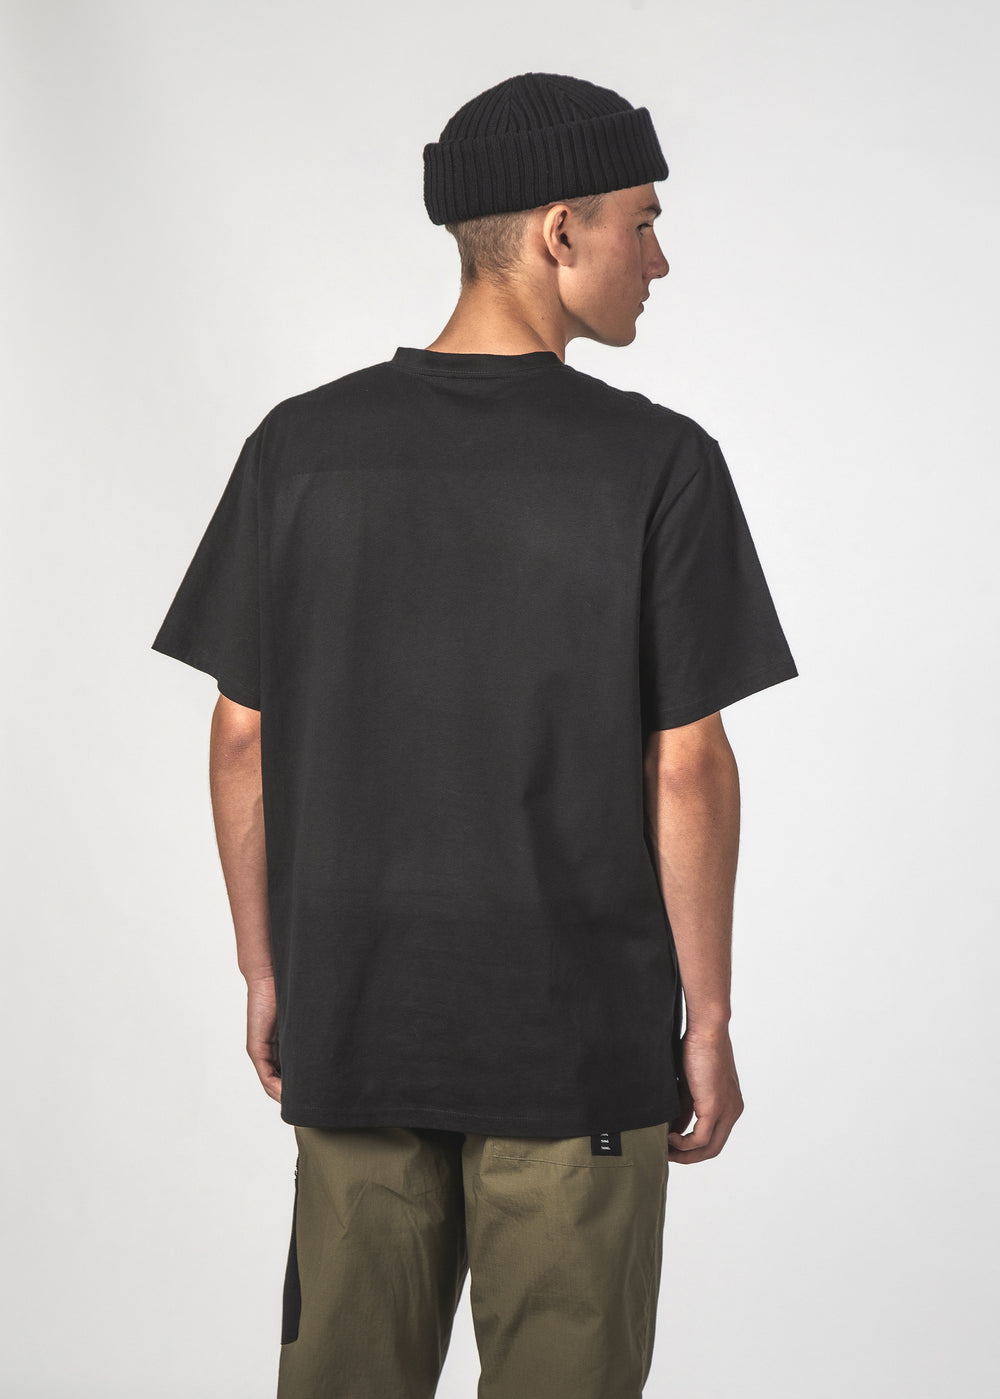 SS TEE - BLACK STANCE